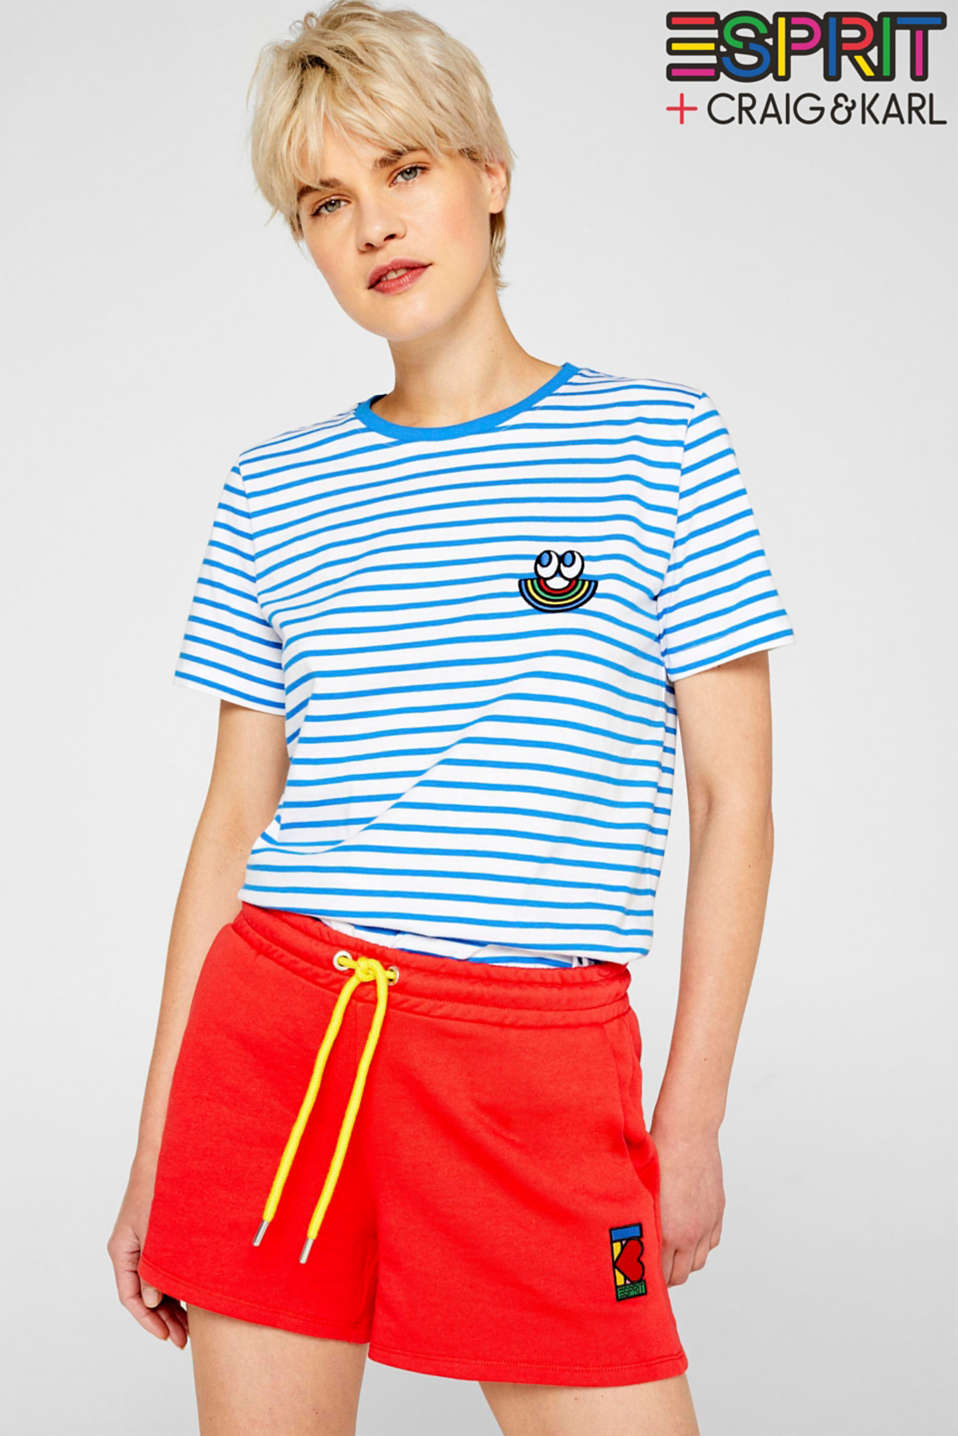 Esprit - CRAIG & KARL: Women Sweat-Shorts, Organic Cotton